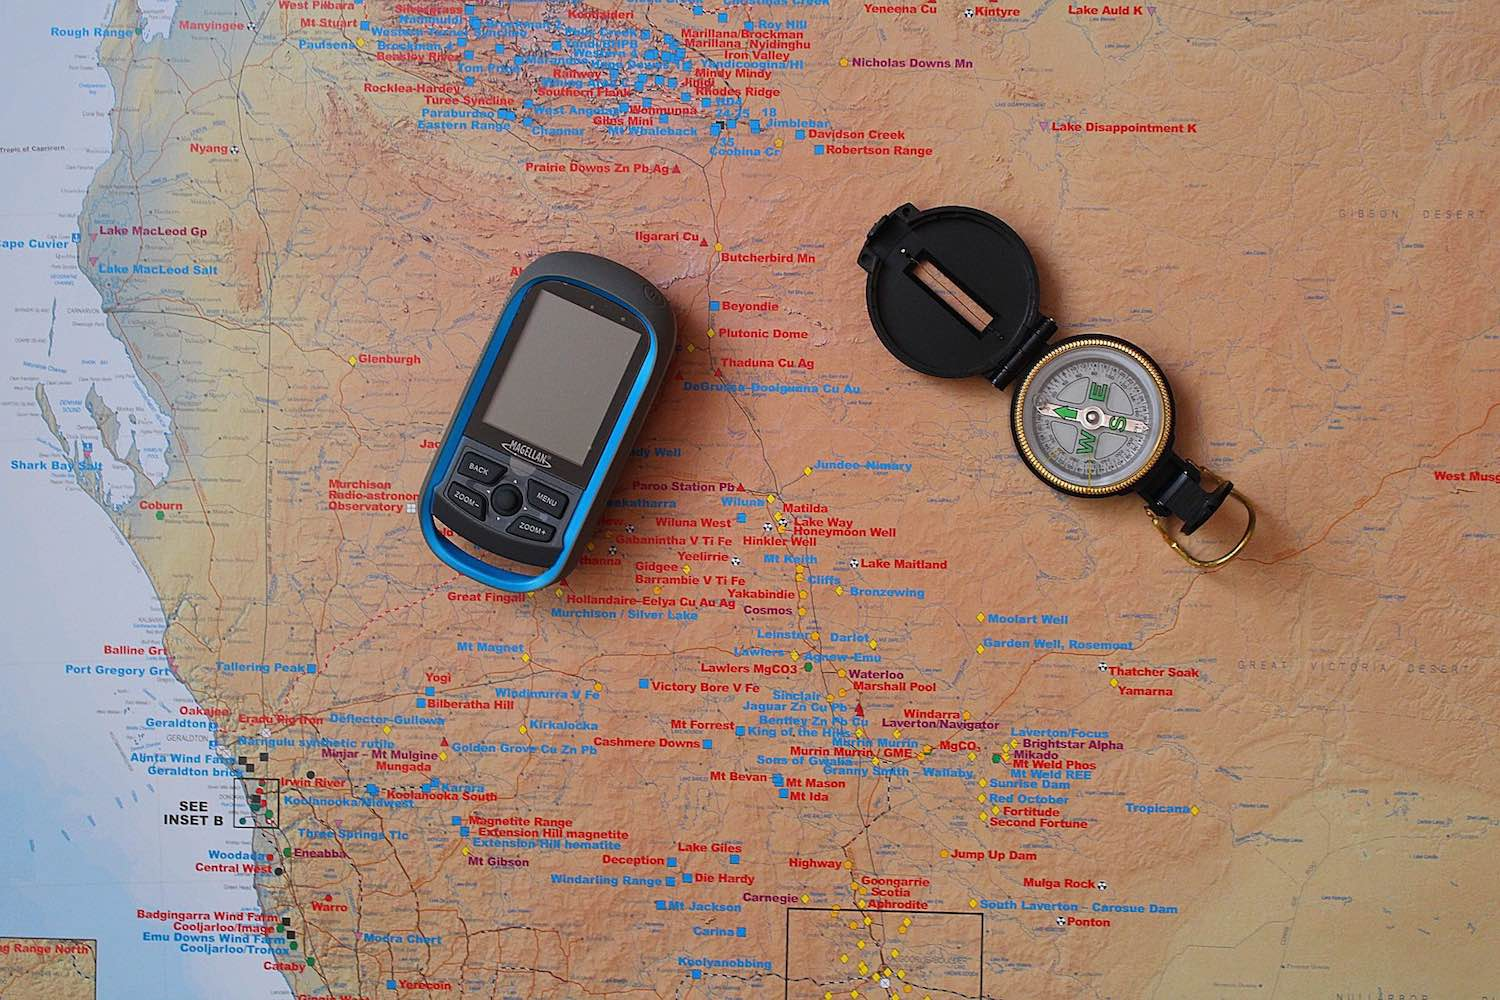 Digital and analog orienteering gear  give you a better chance of finding the correct route.